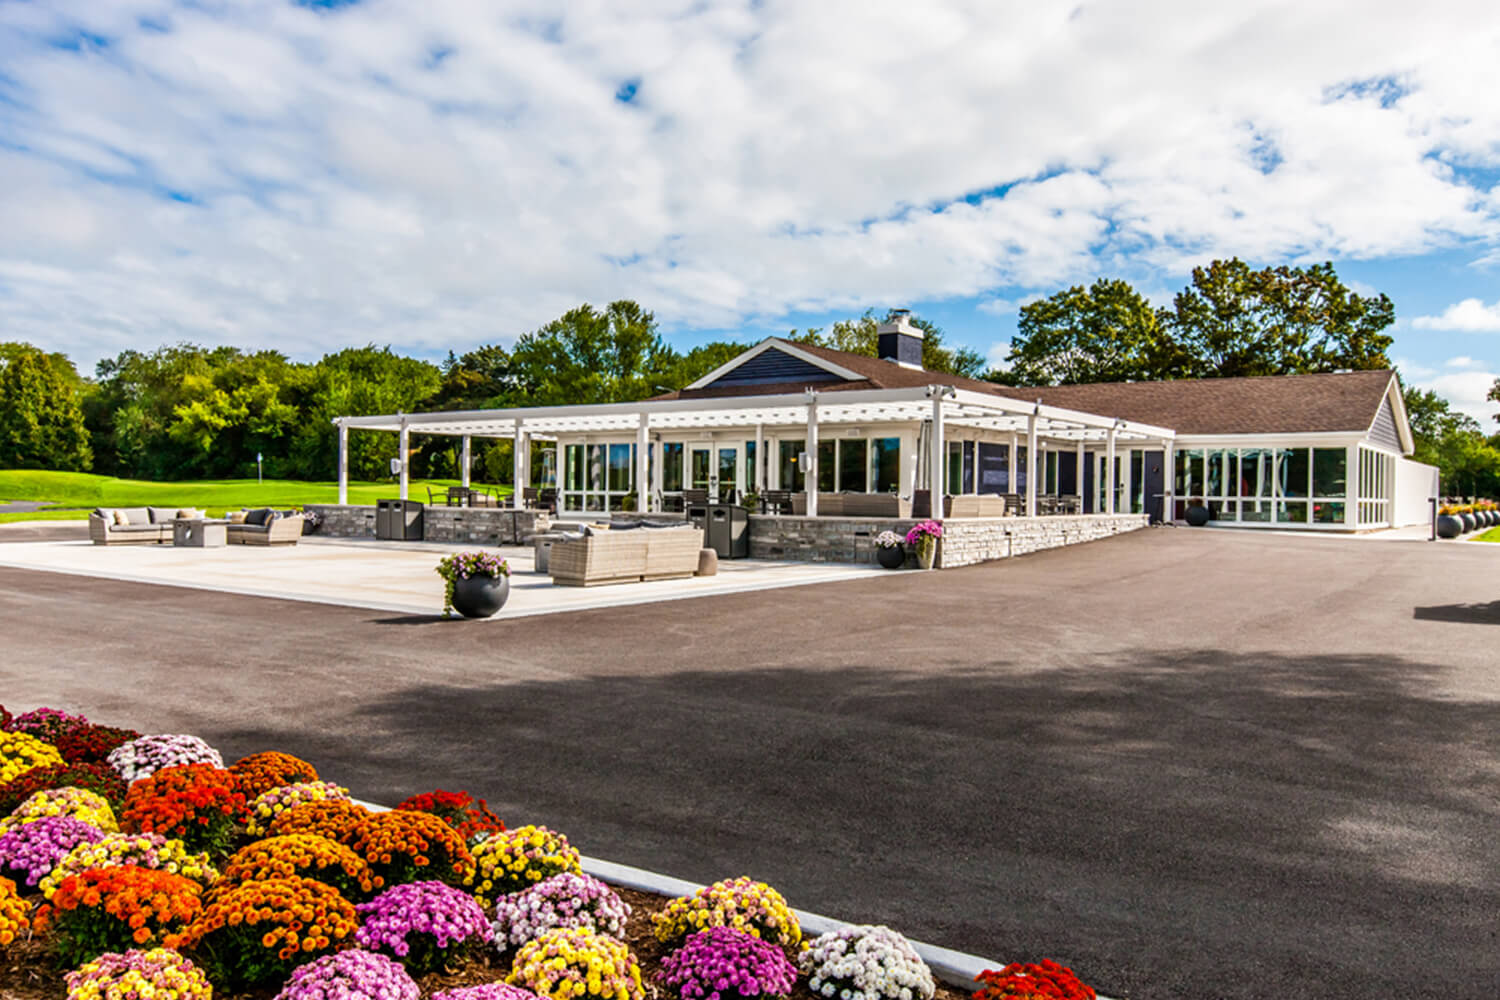 Park District of Highland Park – Sunset Valley Golf Clubhouse exterior